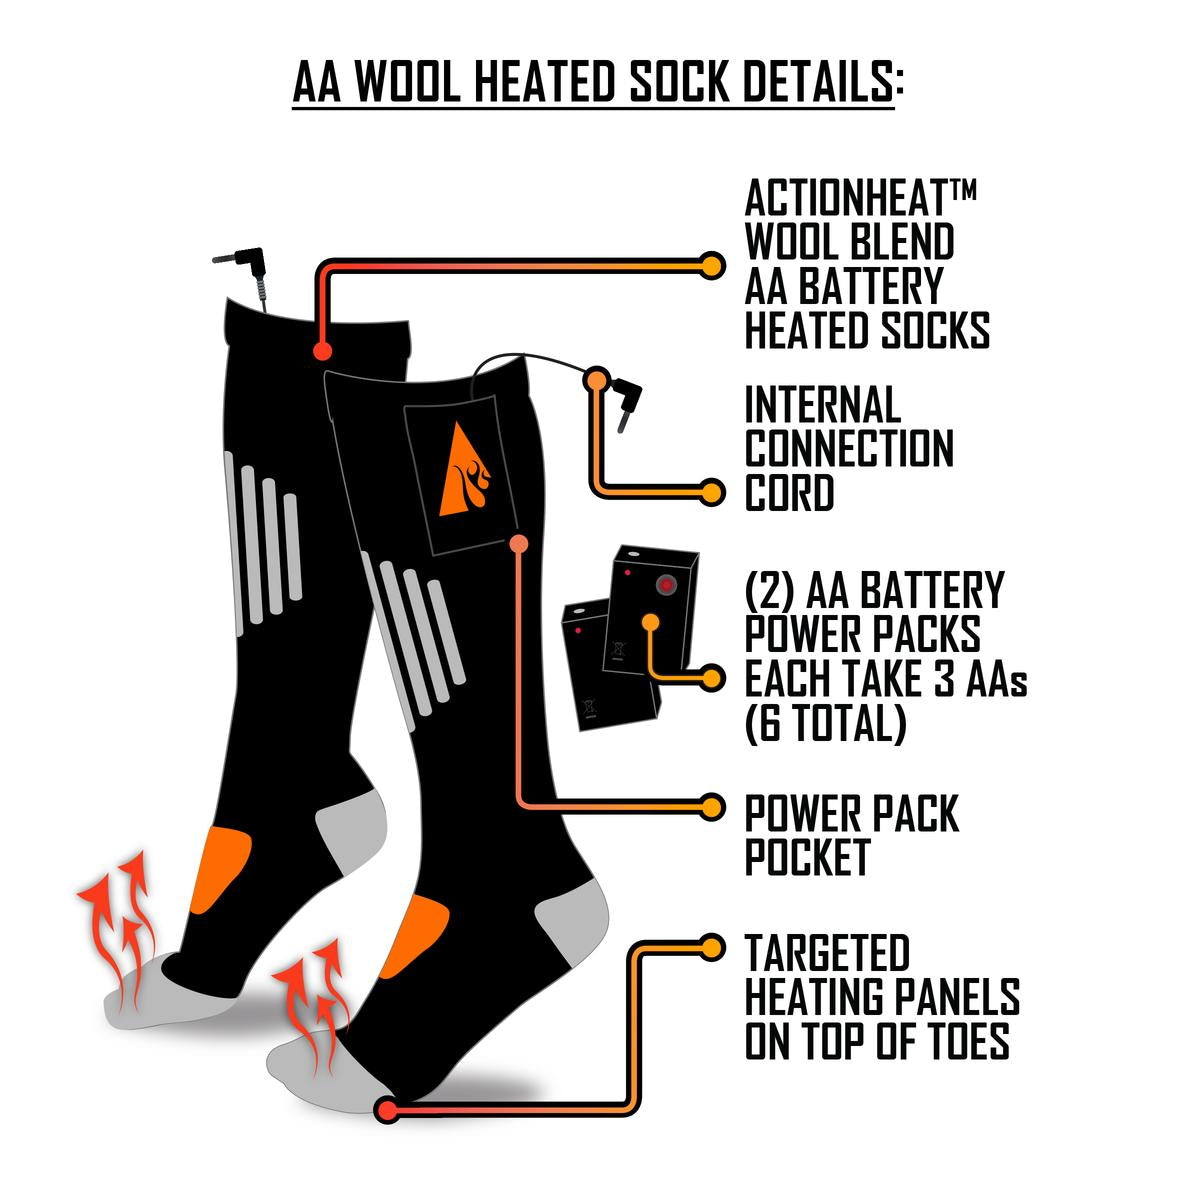 ActionHeat AA Battery Heated Socks - Wool - Right